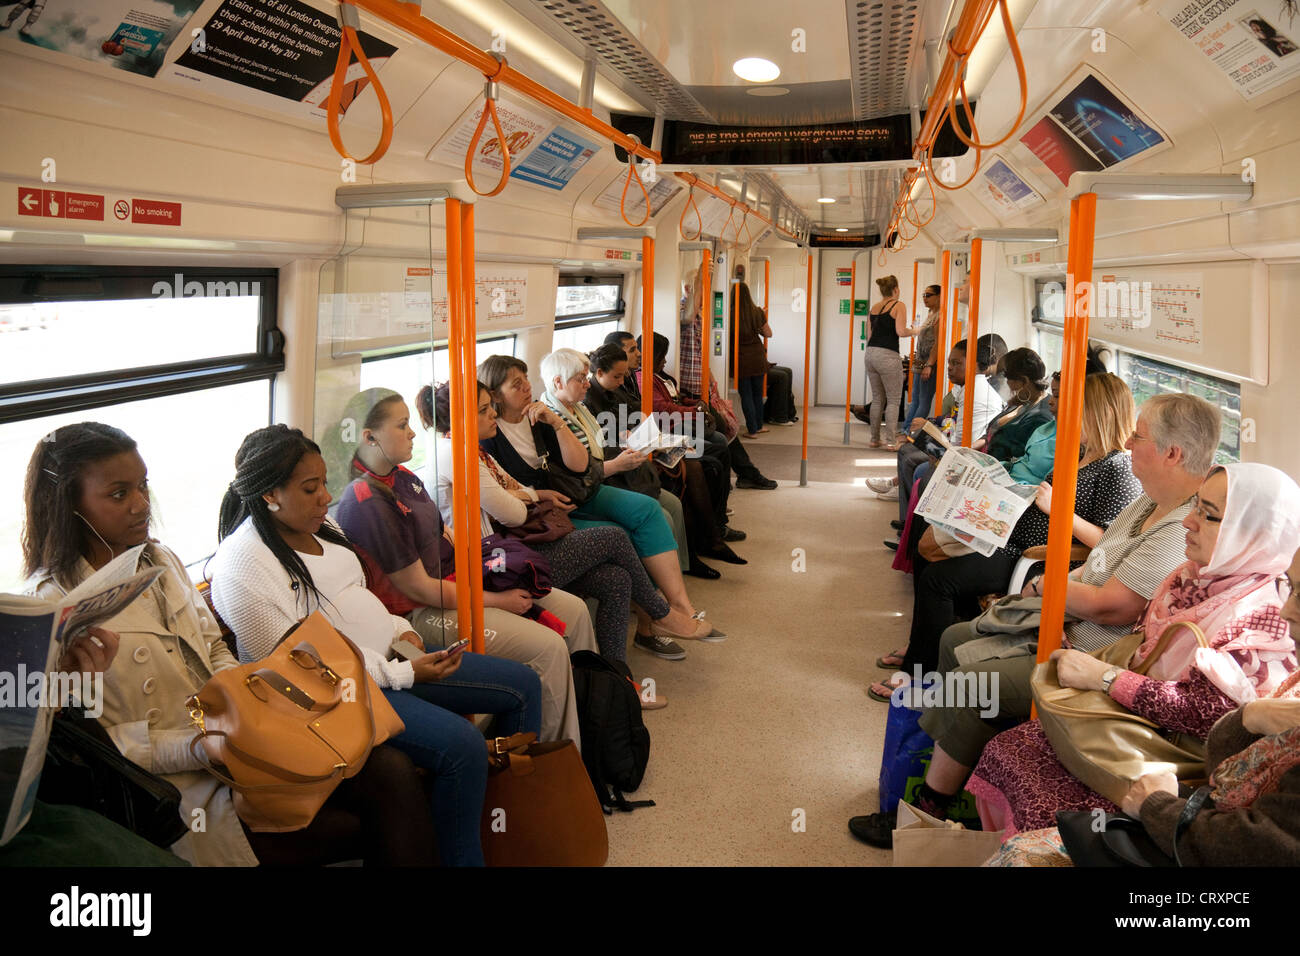 Passengers in a train carriage on the London Overground railway system, London UK - Stock Image